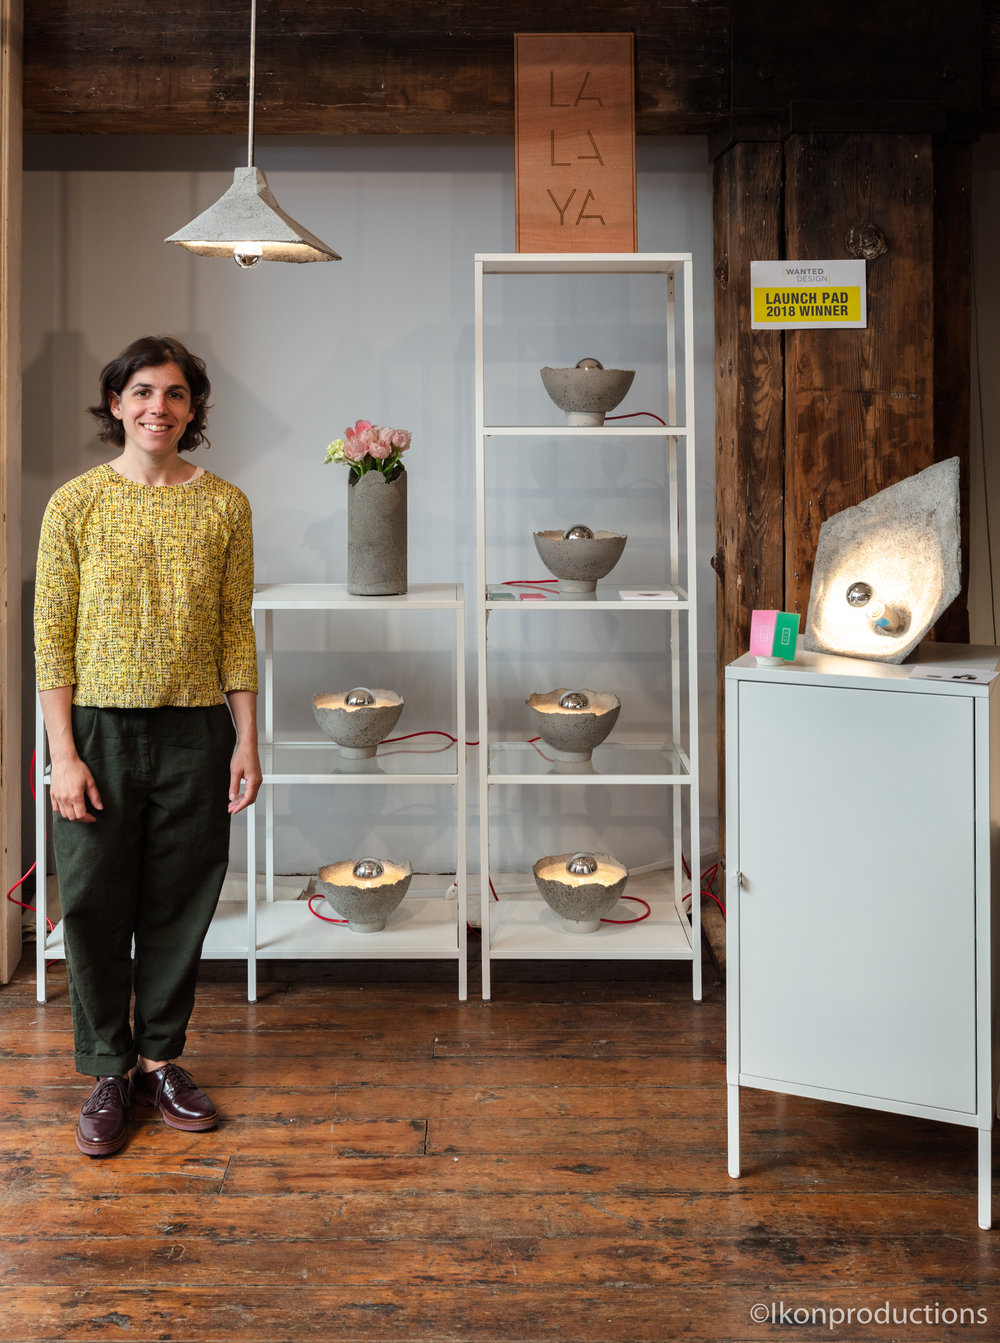 LALAYA Design wins Best of LaunchPad at WantedDesign 2018